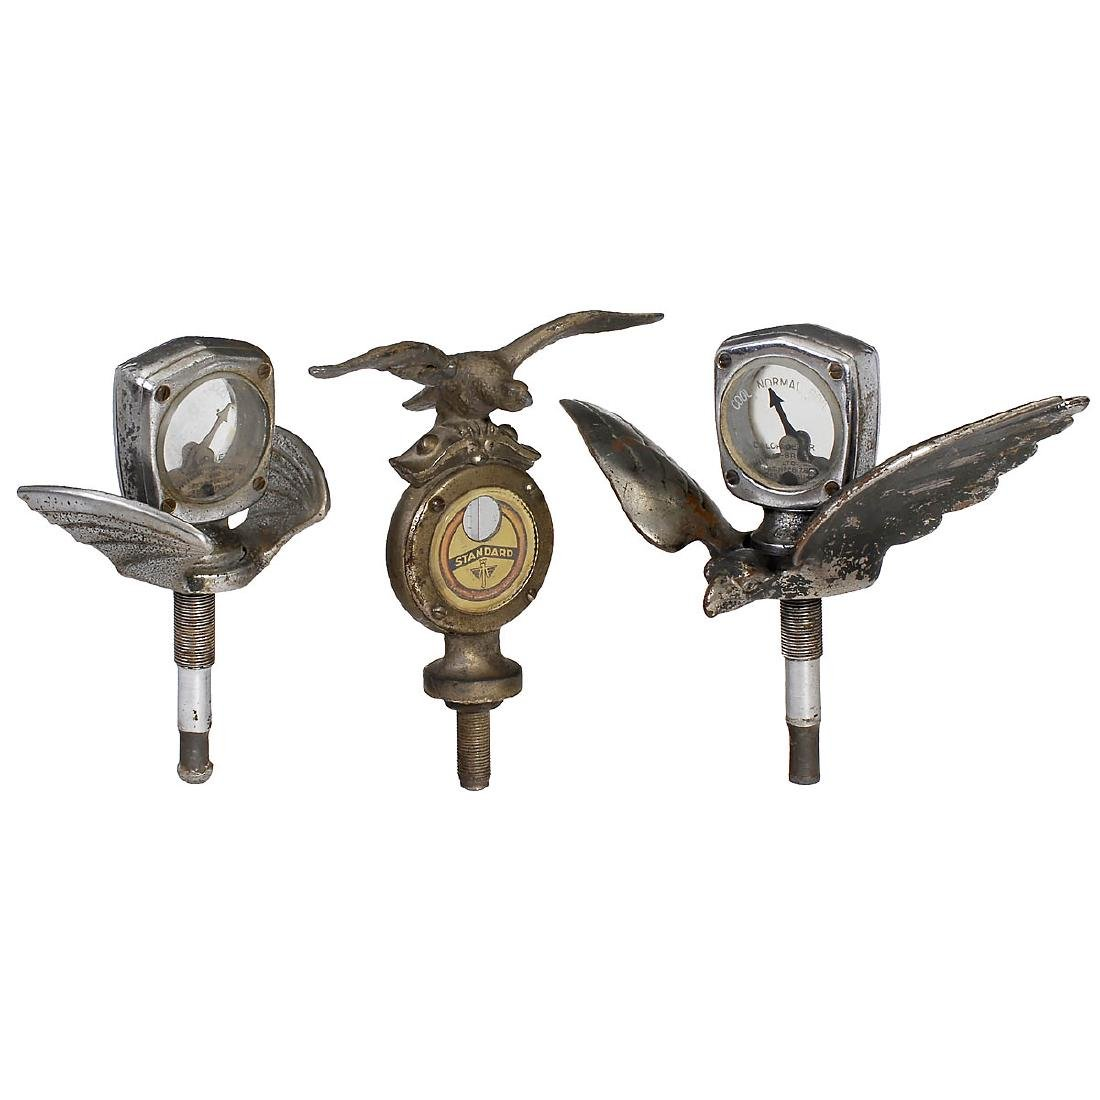 3 Hood Ornaments with Calometers, c. 1925